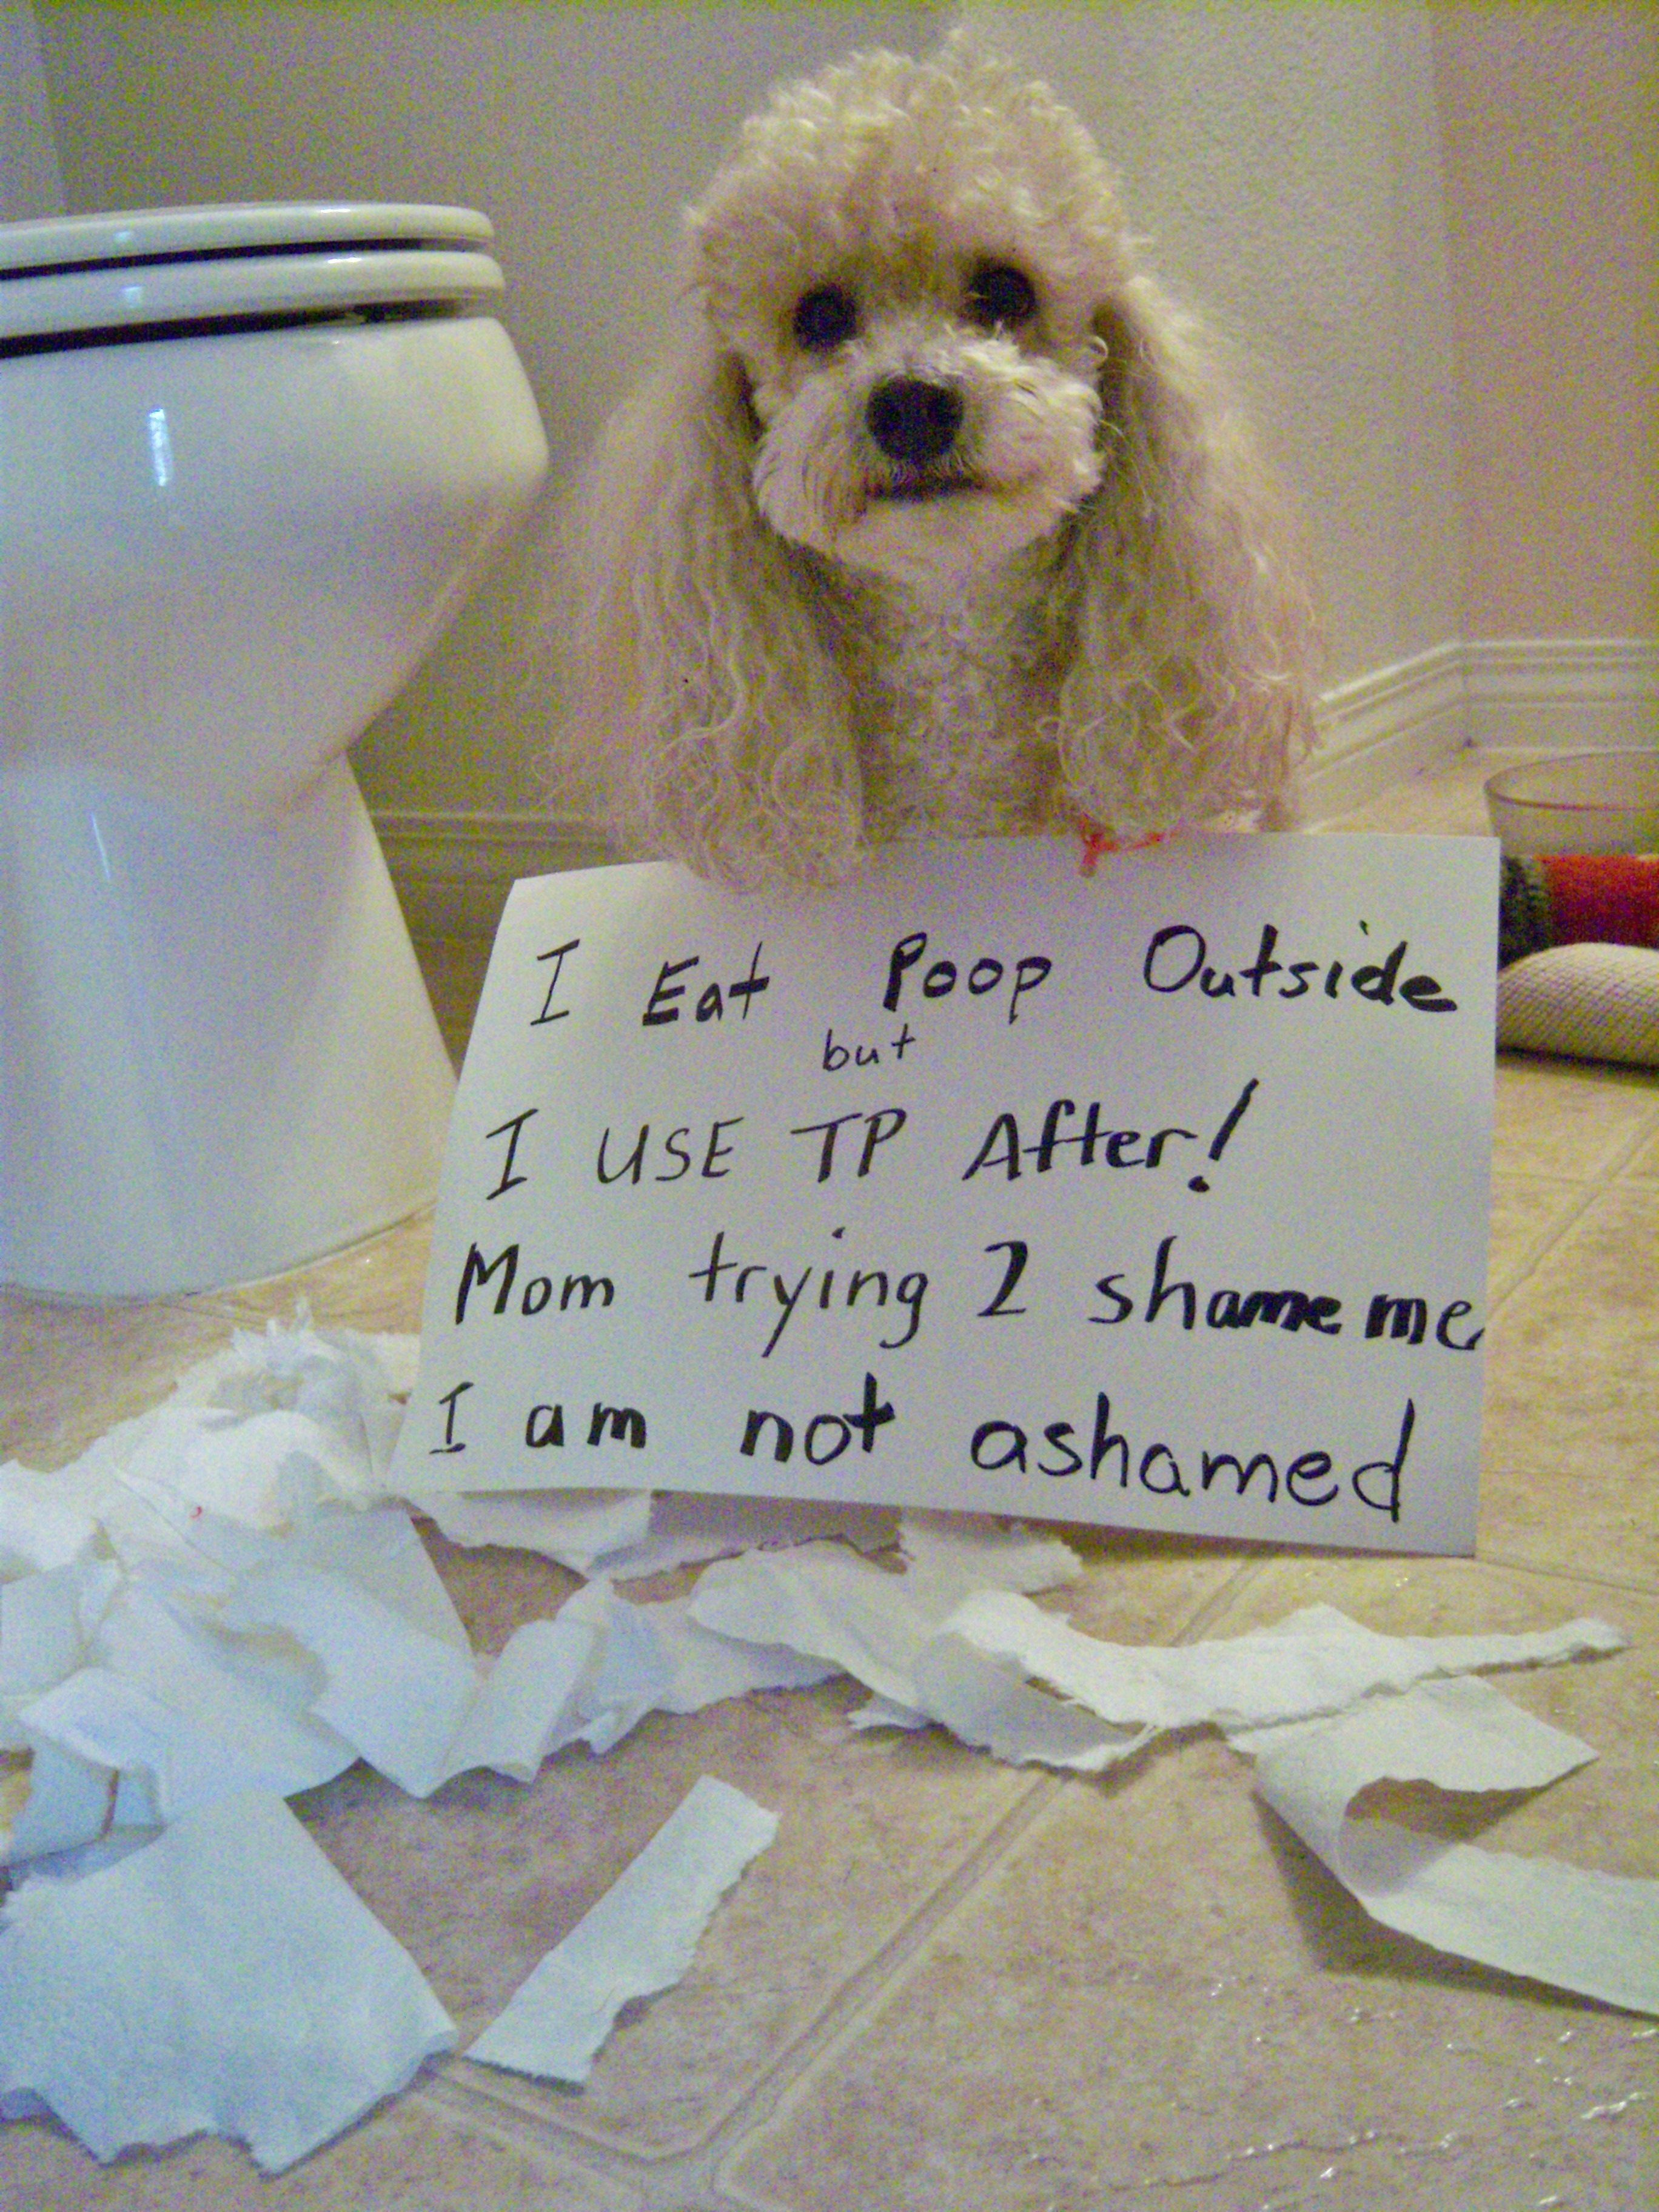 Poodle Shaming His Name Is Chewy I Am Not Kidding Poodle